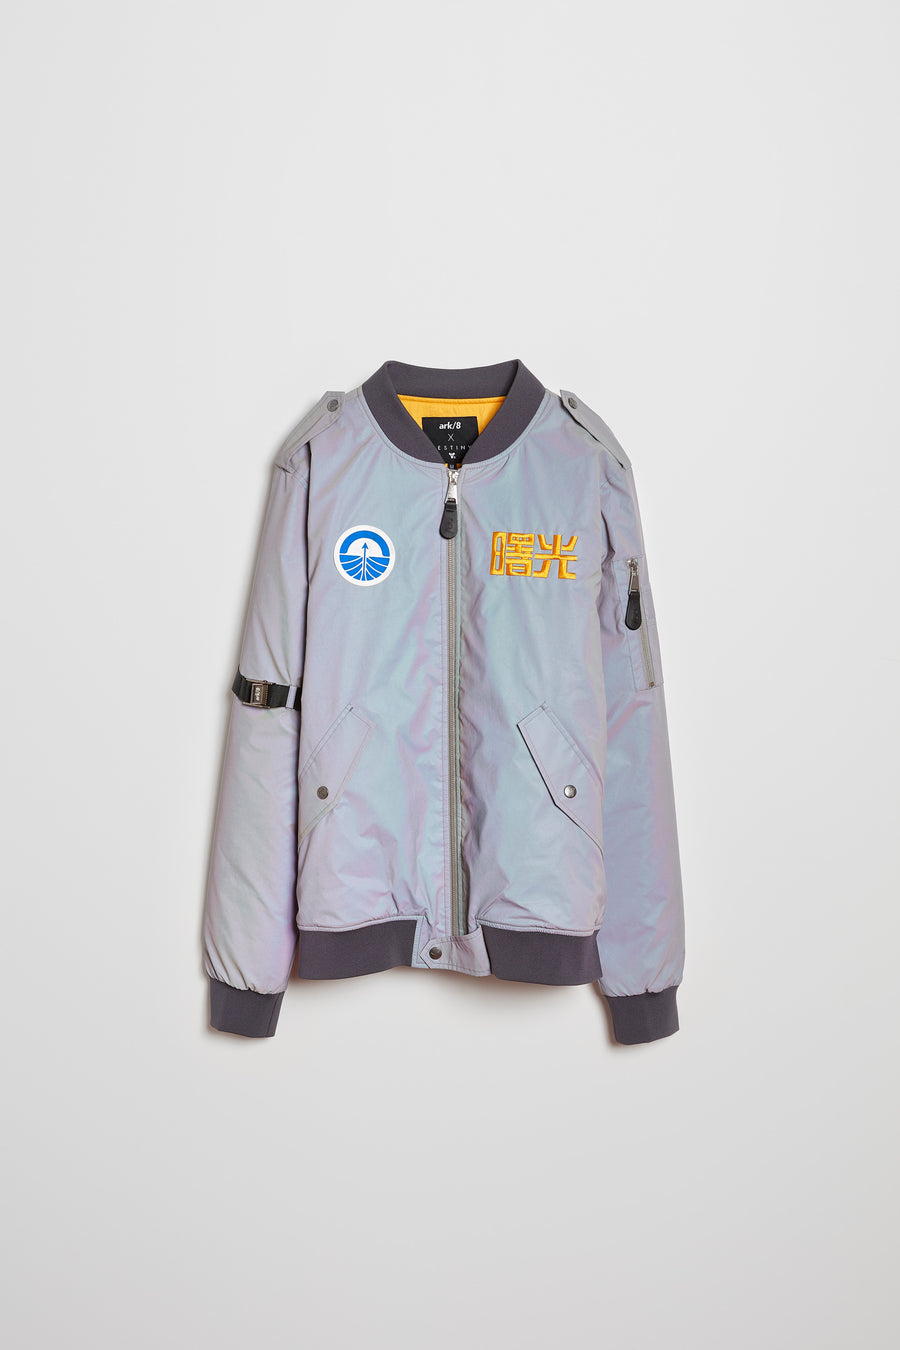 Destiny Luna MA-1 Flight Jacket